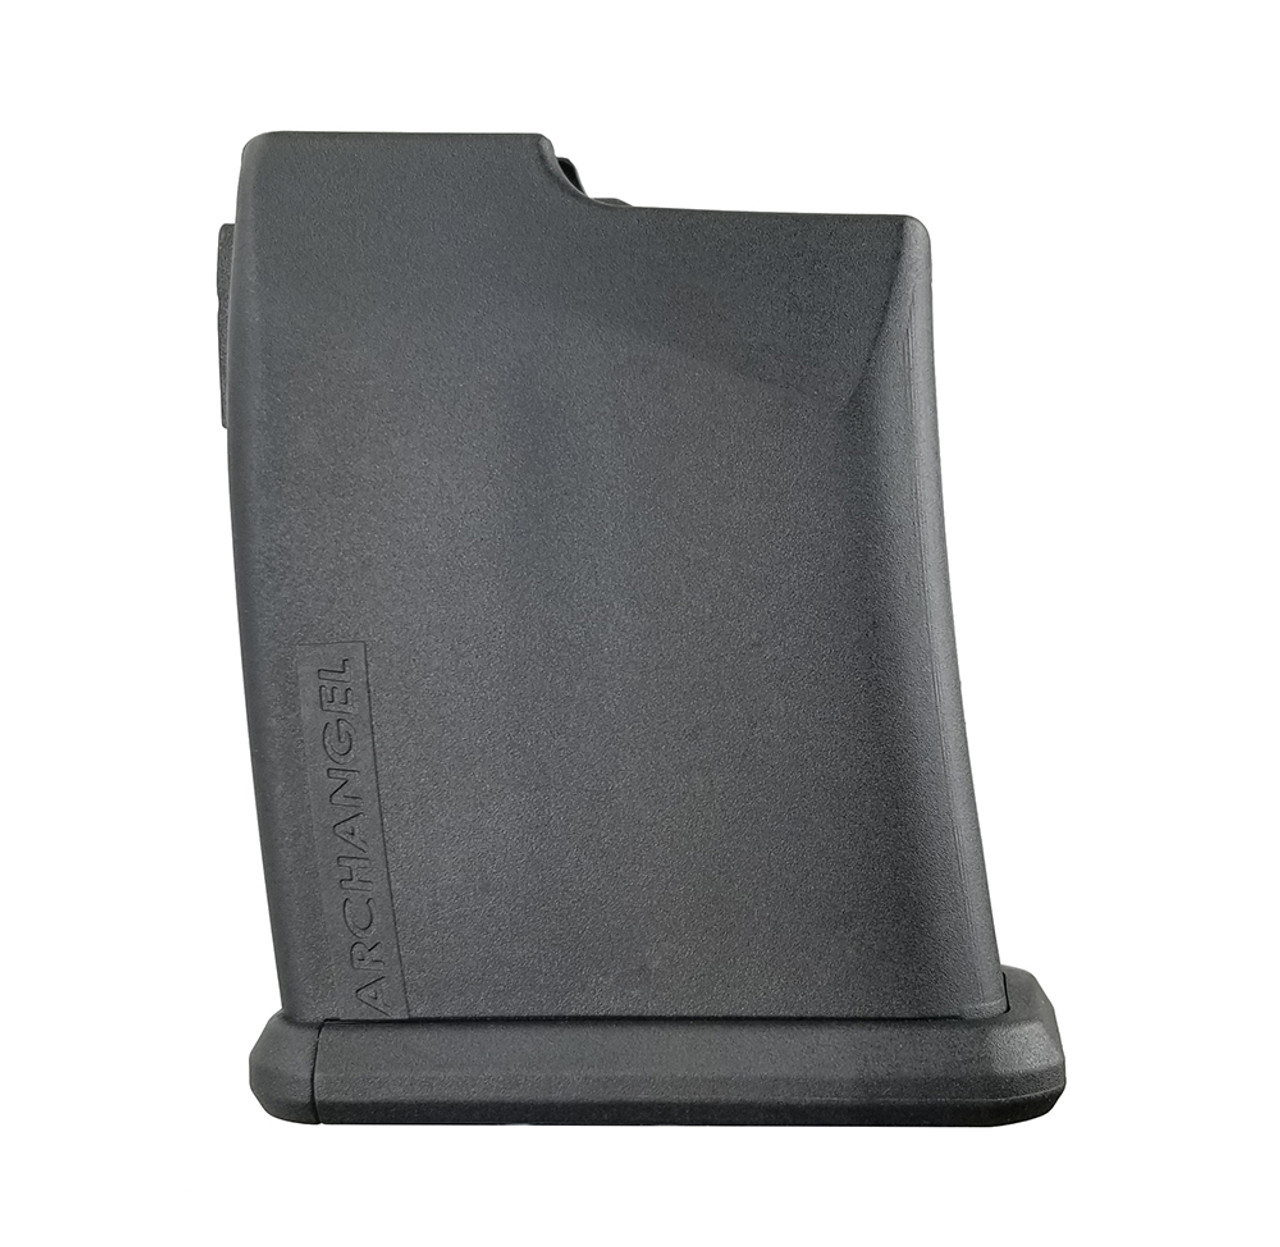 Archangel® Short Action .308 Based Cartridges TYPE D Magazine for Precision Elite Stocks (10) Rd - Black Polymer